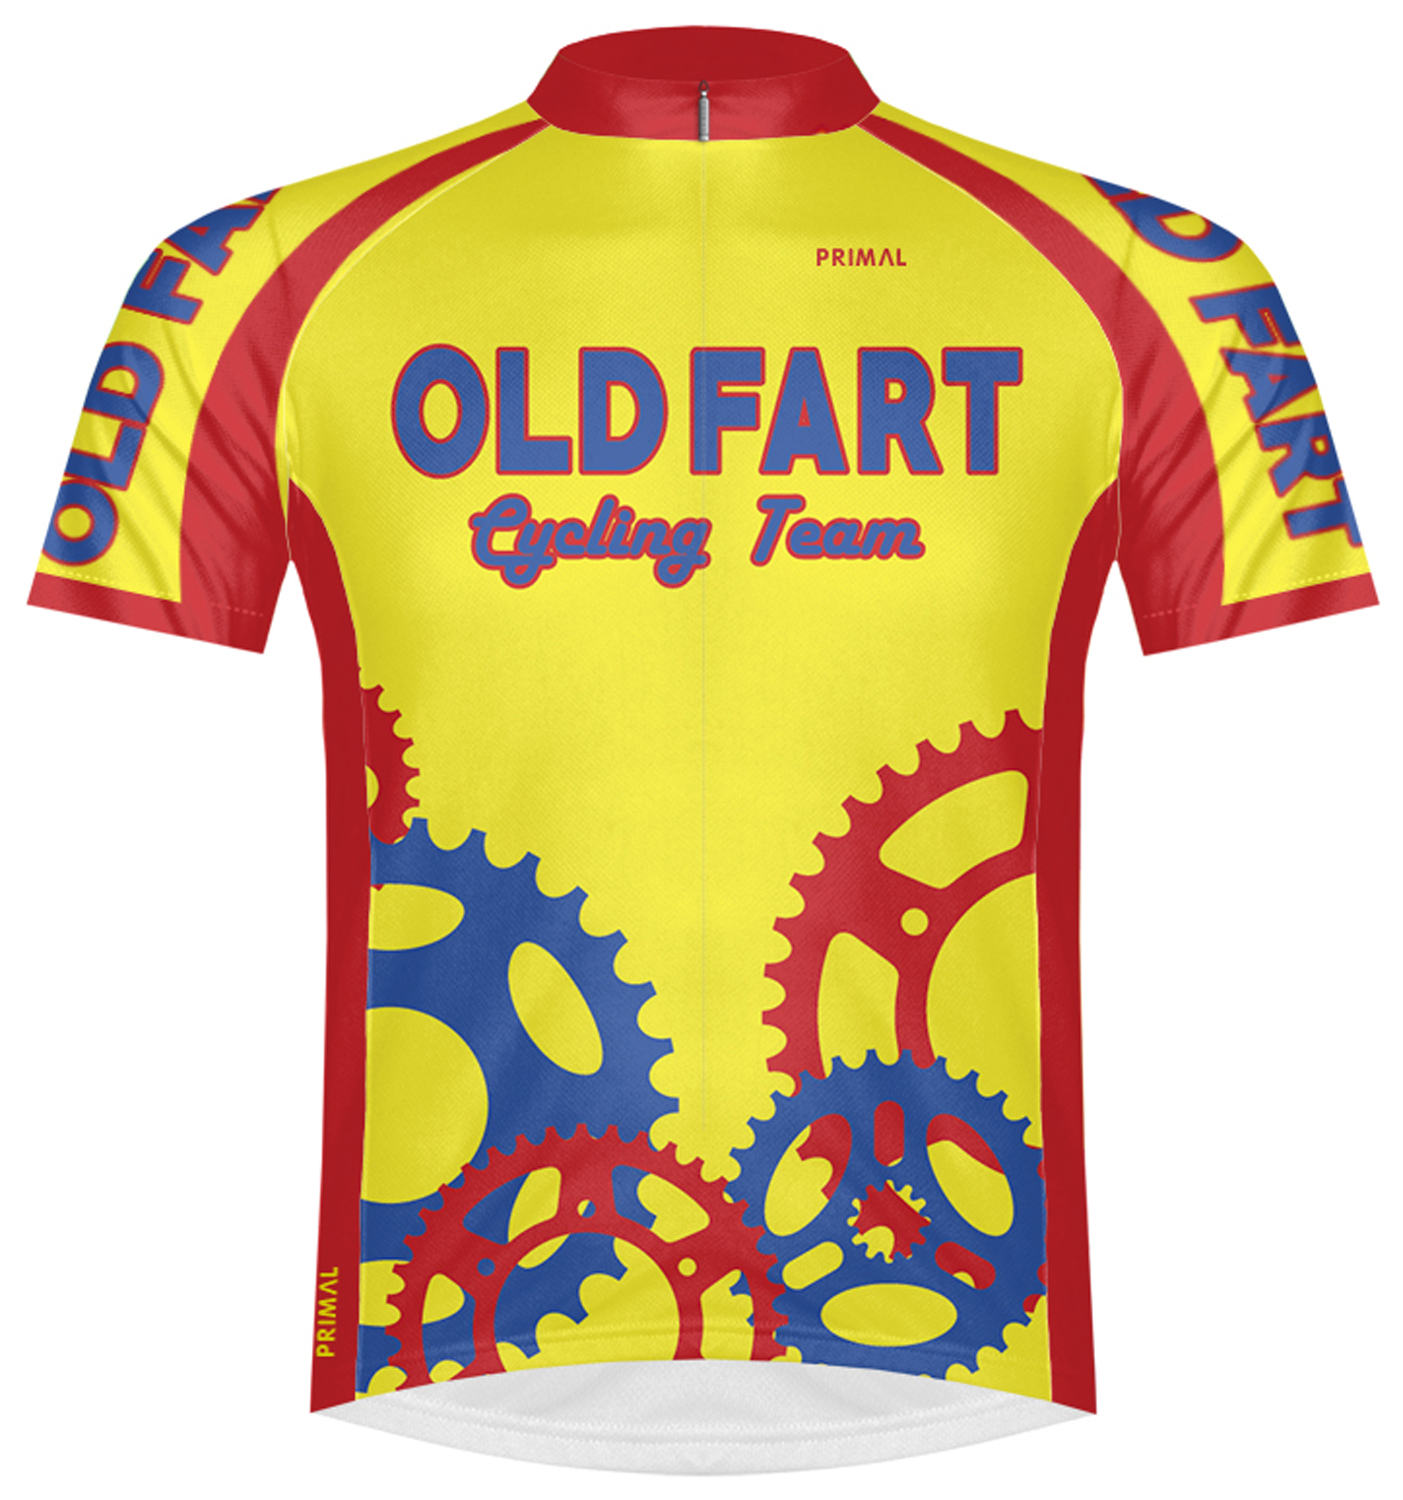 cd9e7abd8 Primal Wear Old Fart Cycling Team Jersey Mens short sleeve bicycle bike +  sox